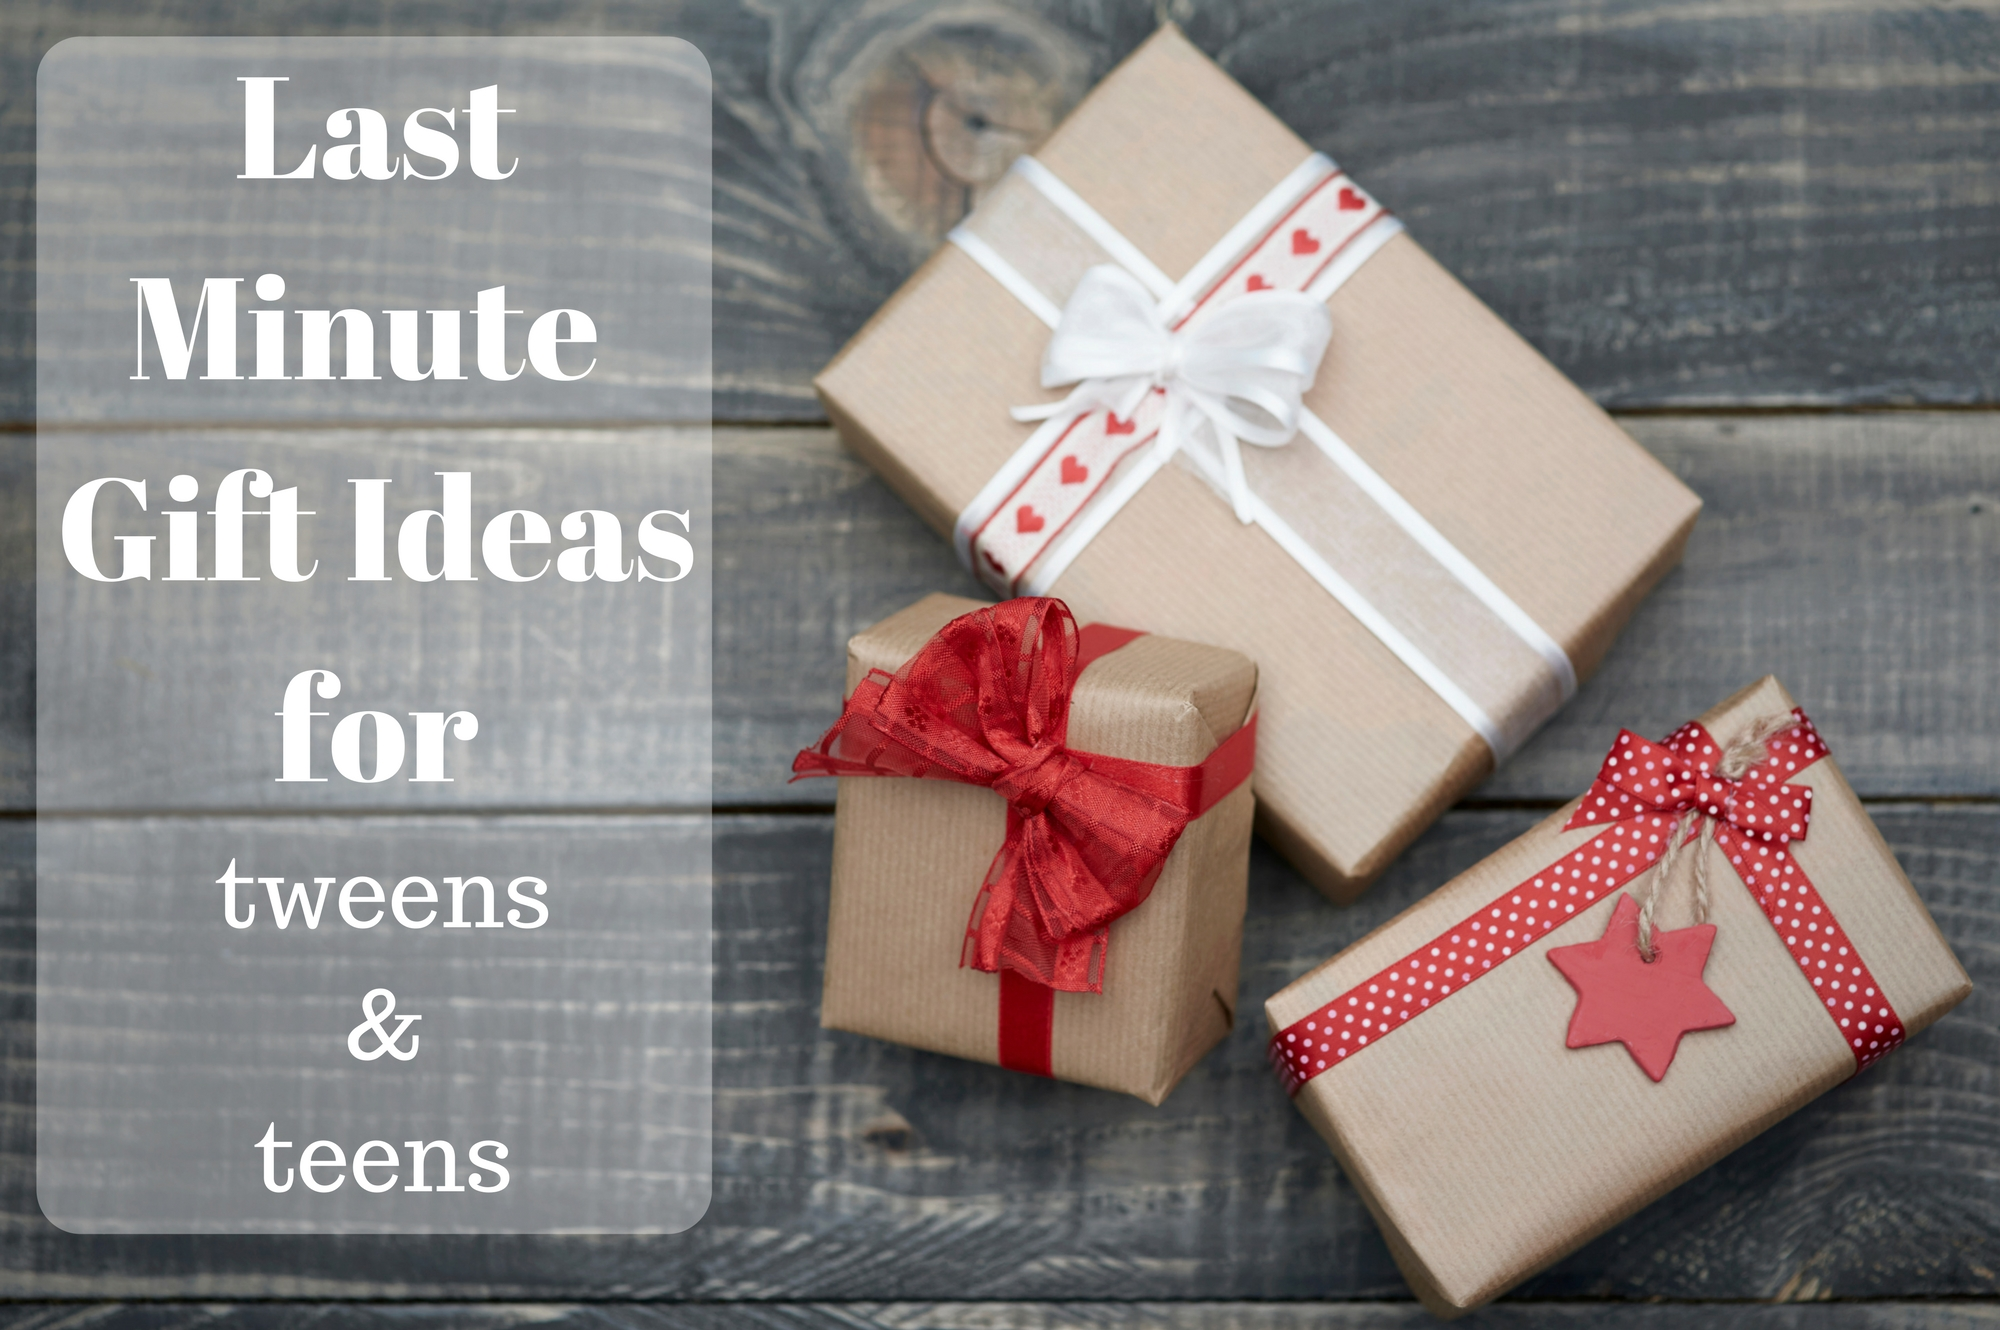 Last Minute Gift Ideas from Saucepan Kids for tweens and teens